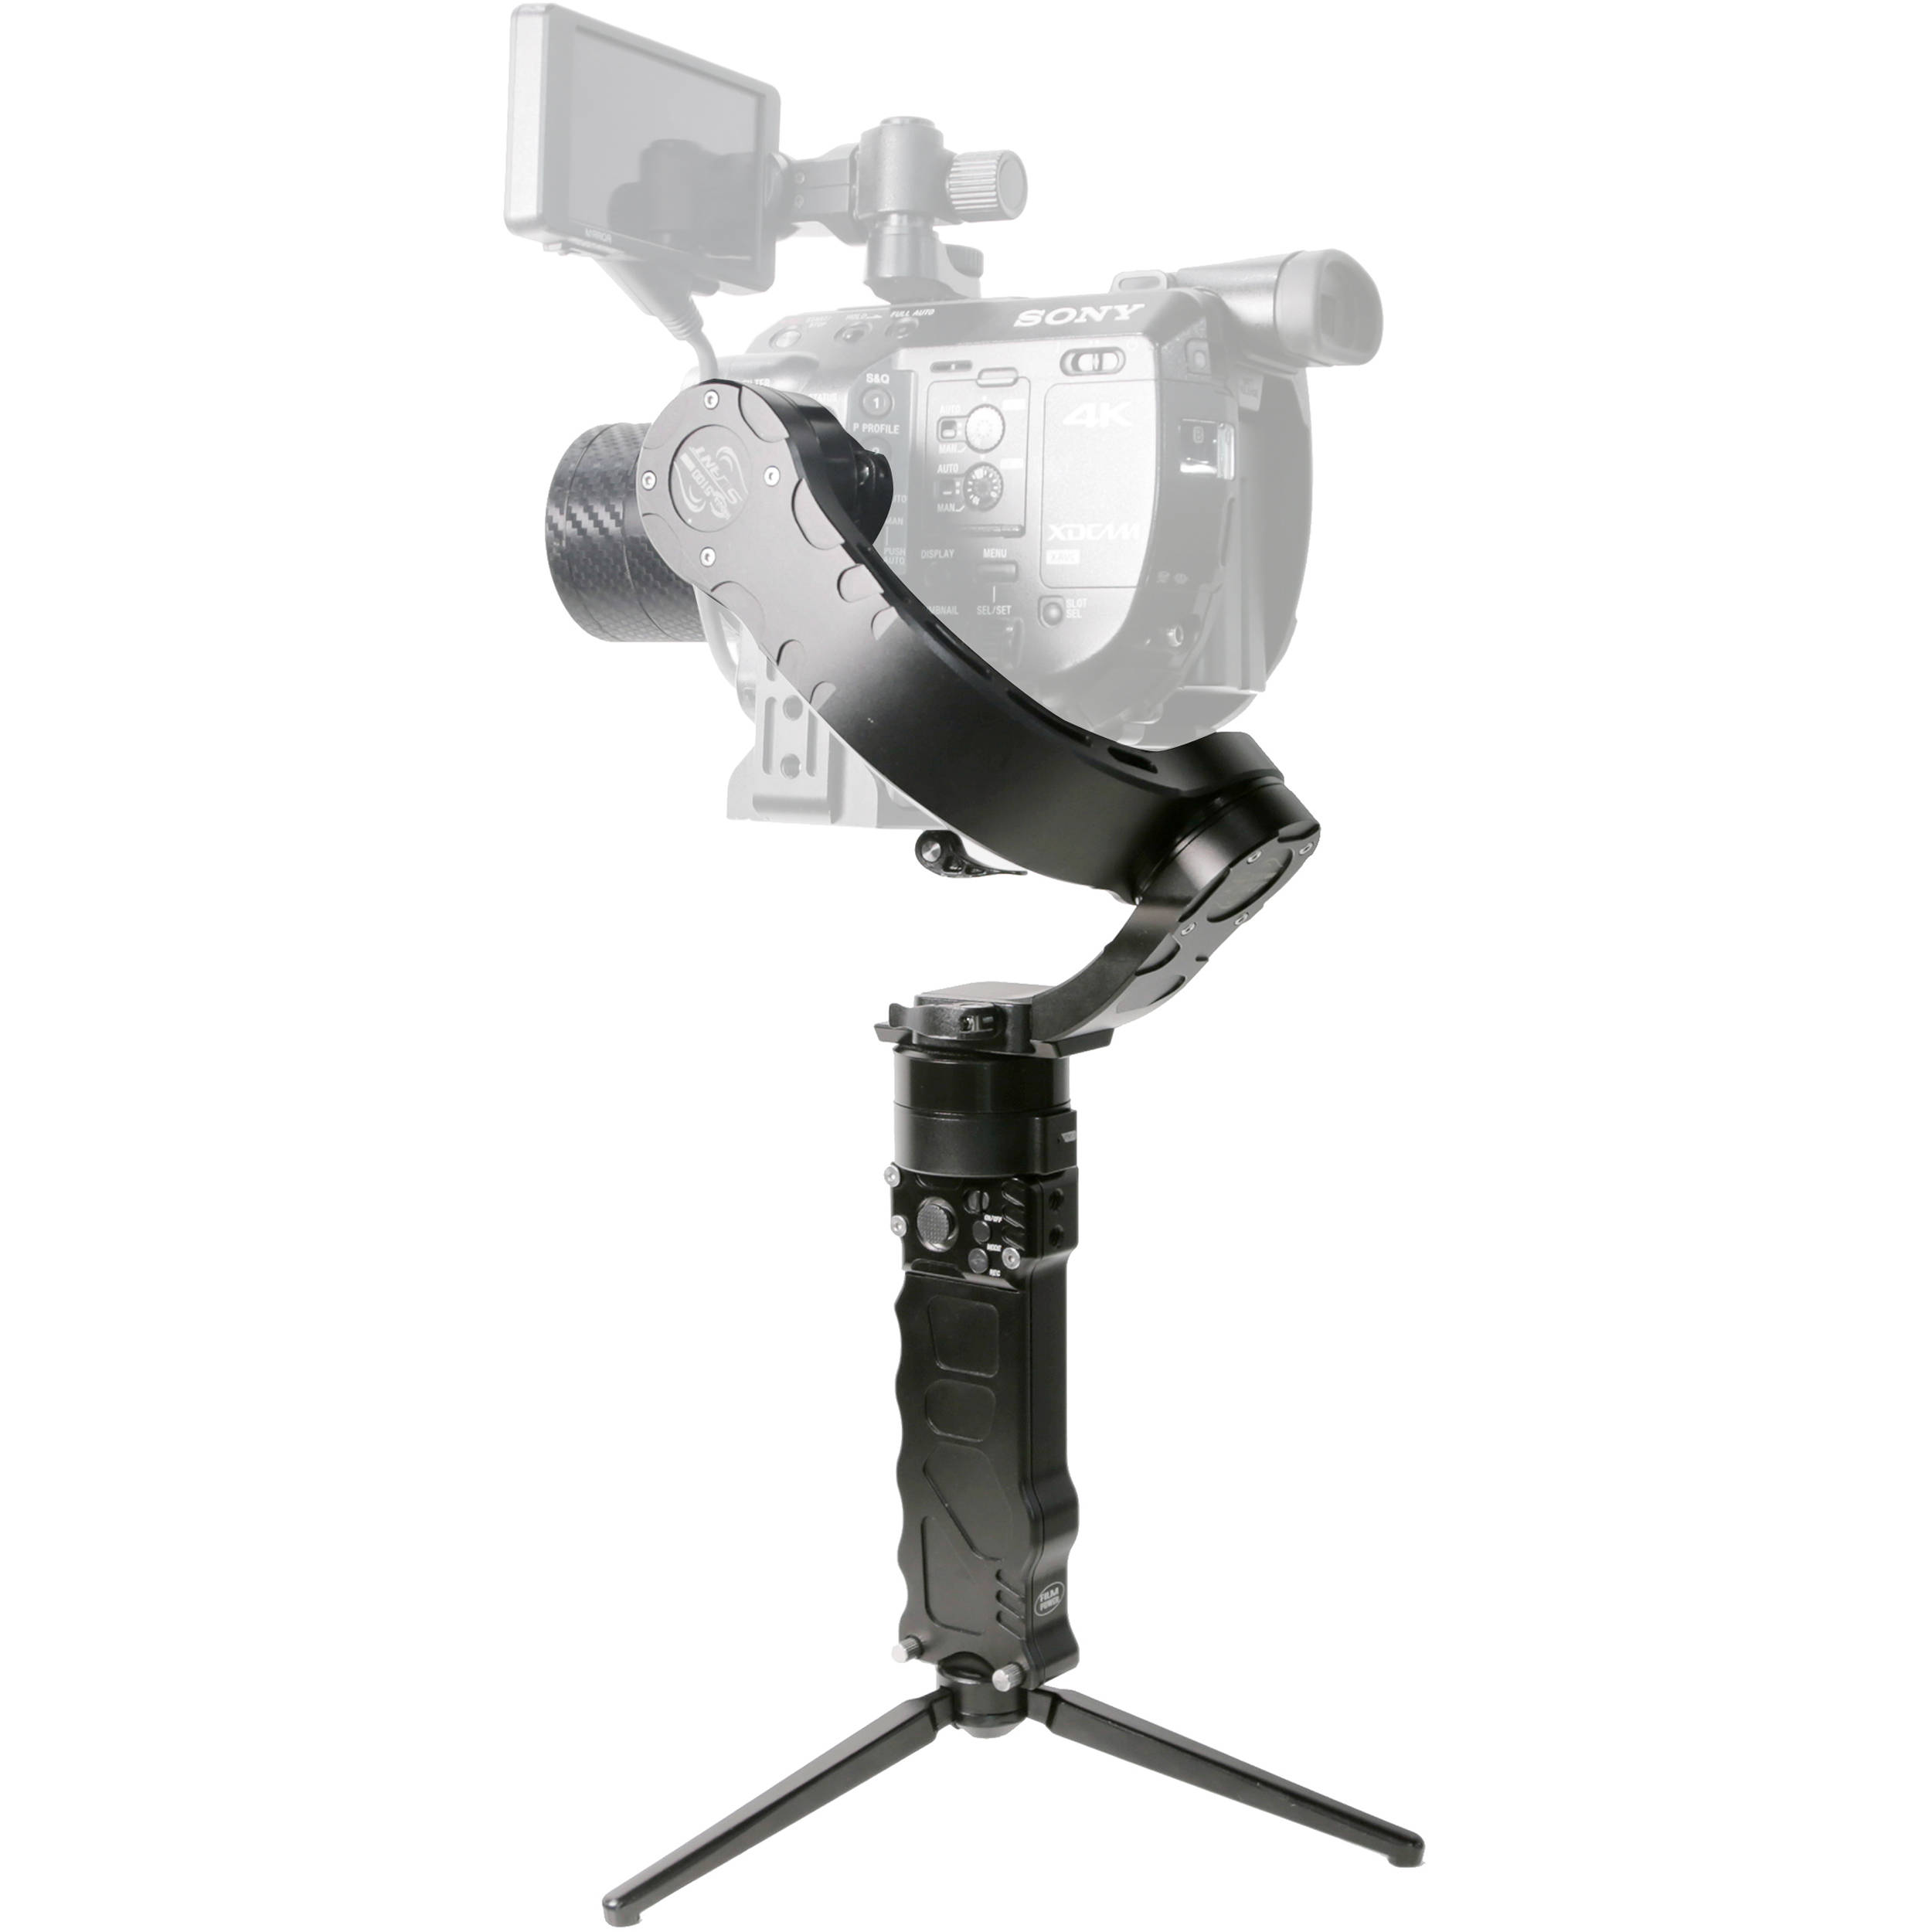 a5b897302d Nebula 5100 Slant 3-Axis Handheld Gimbal with Built-In FPNE5100S